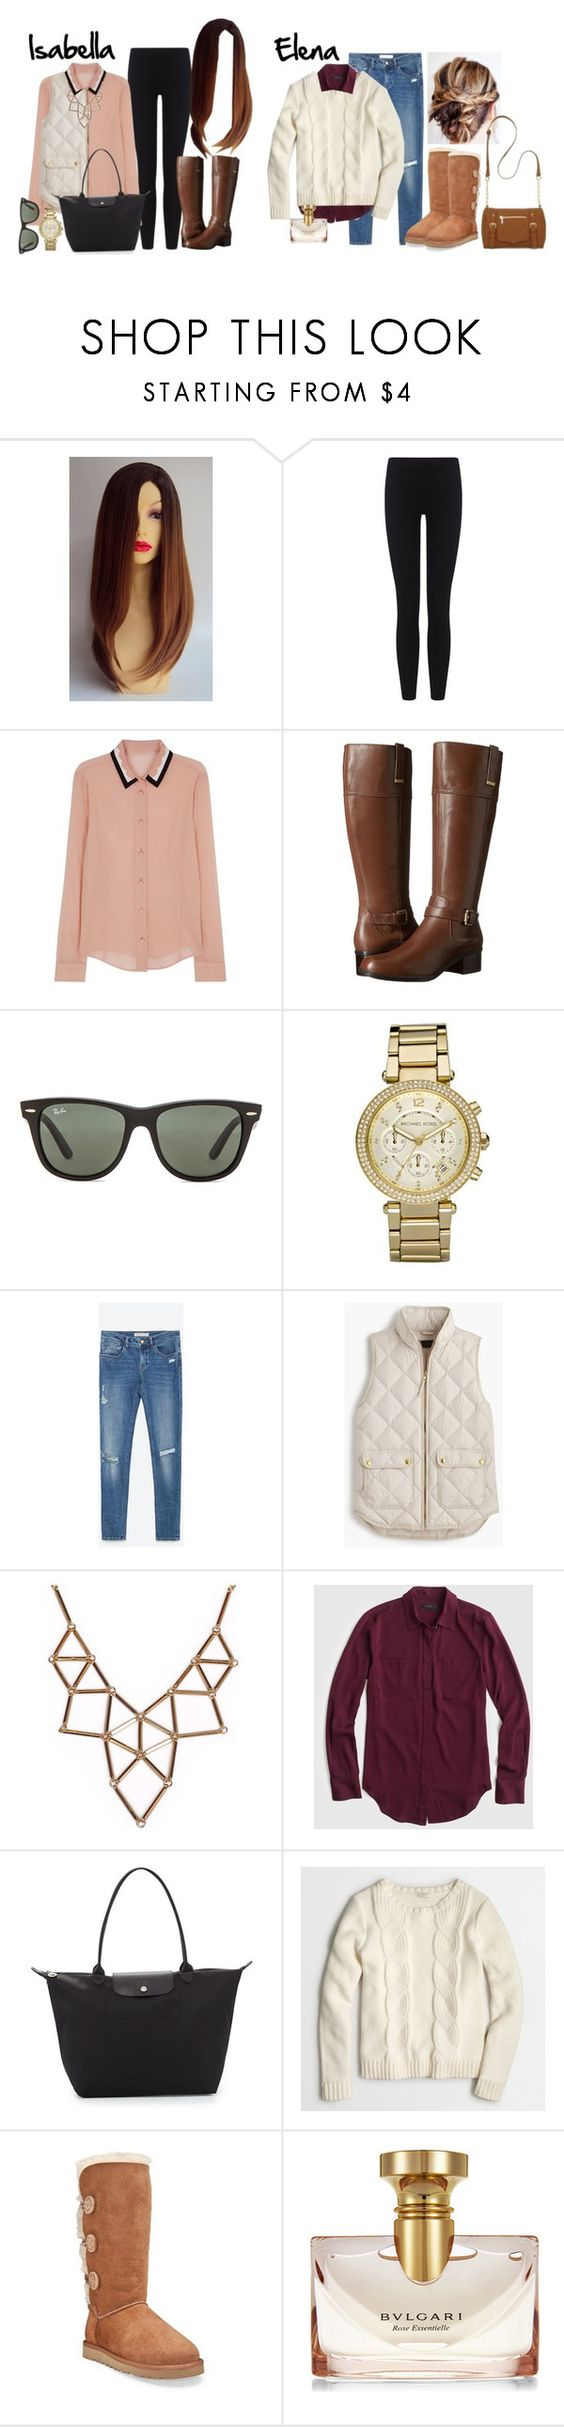 """""""Dinner Date // #mfeocouplescontest"""" by stevie22 ❤ liked on Polyvore featuring James Perse, RED Valentino, Bandolino, Ray-Ban, Michael Kors, Zara, J.Crew, Chicnova Fashion, Longchamp and UGG Australia"""